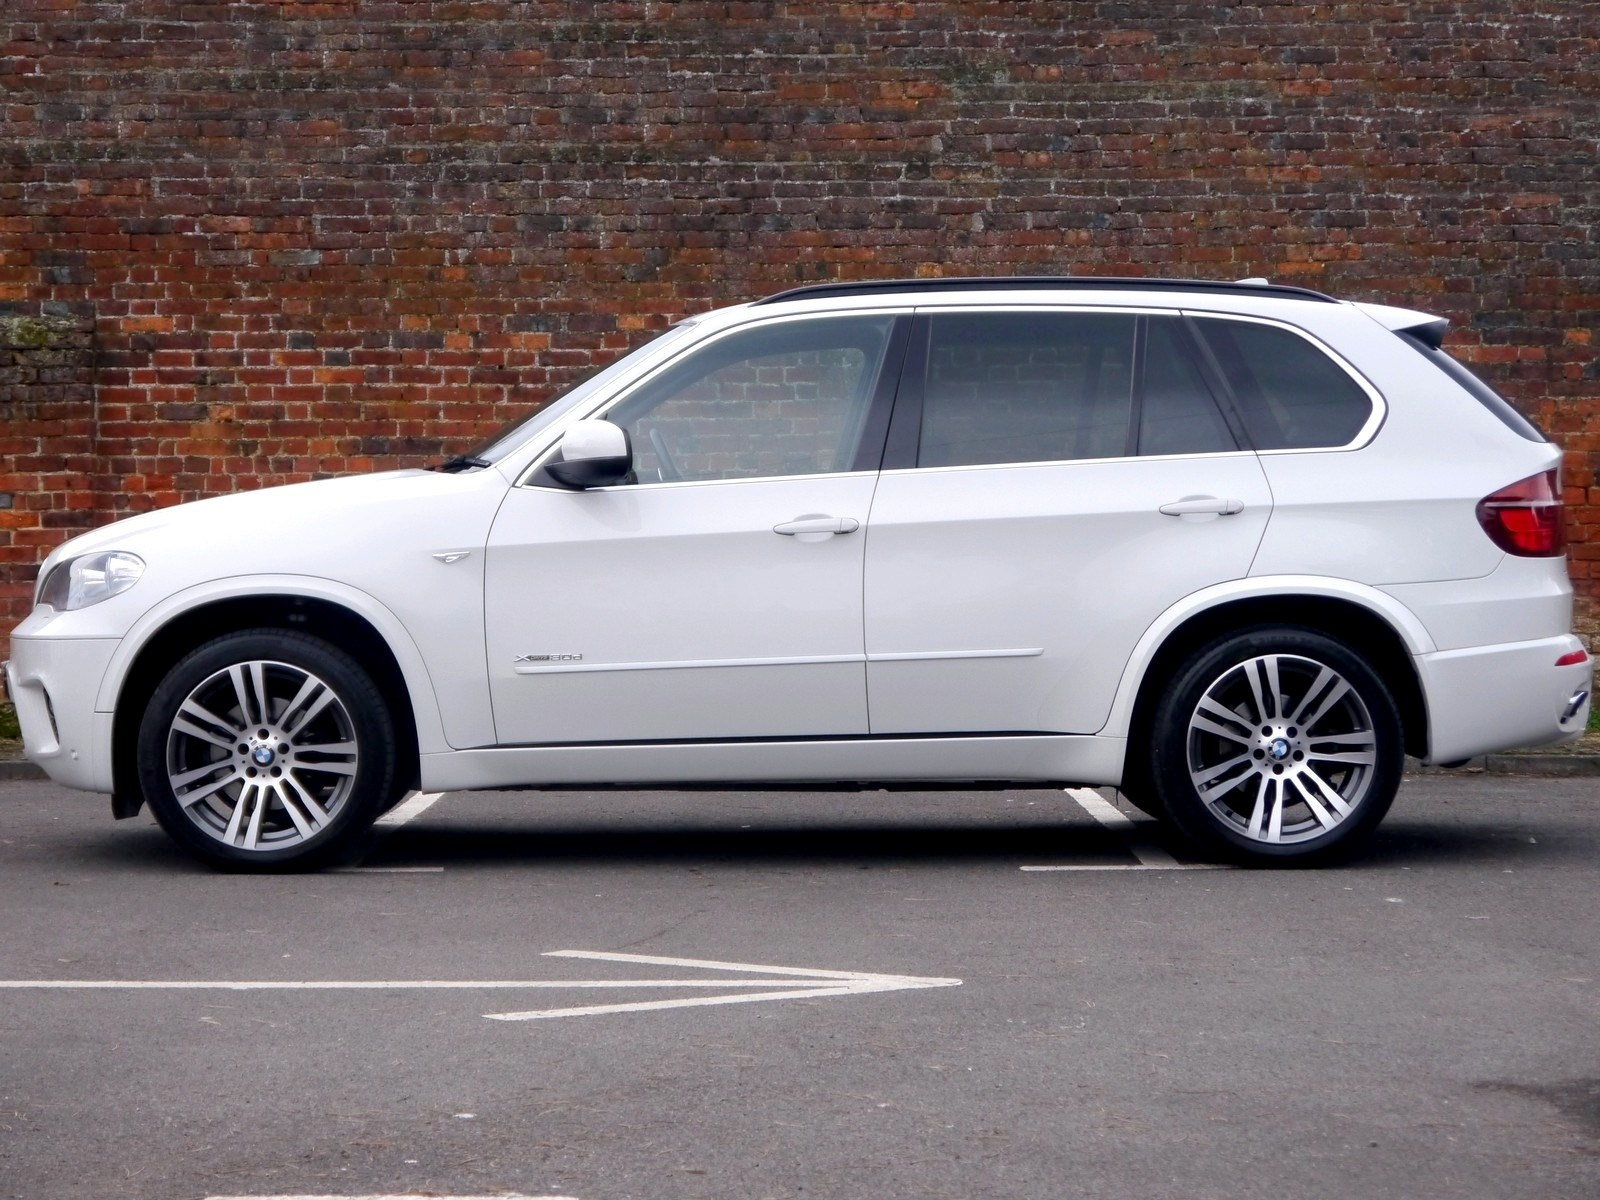 Bmw X5 Xdrive30d M Sport Automatic 7 Seats 20 Alloy